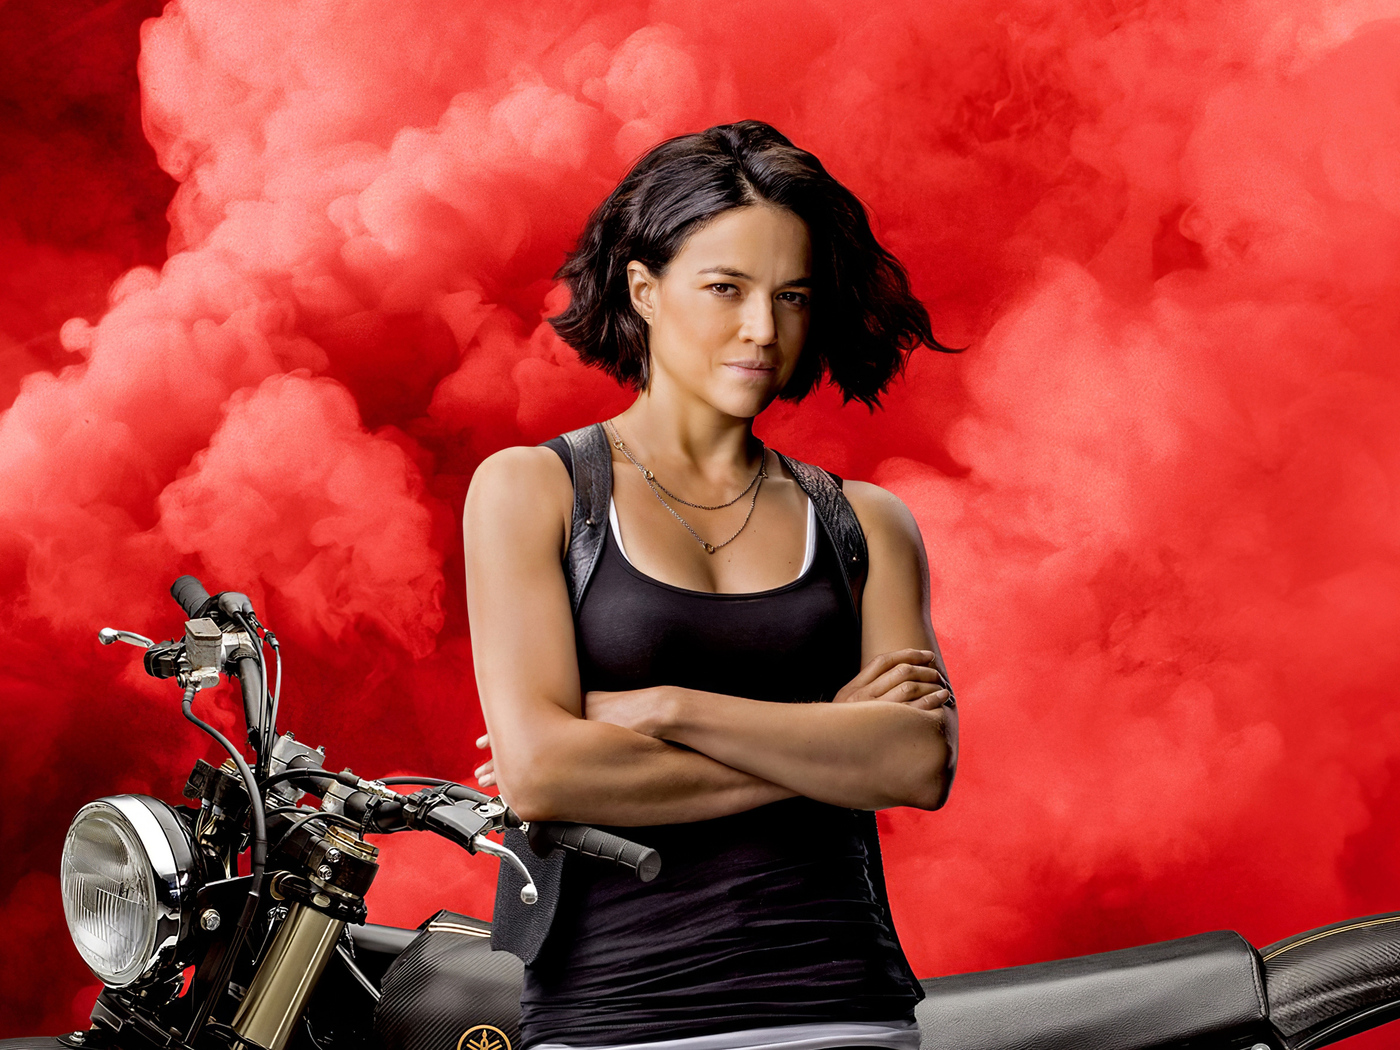 letty-ortiz-in-in-fast-and-furious-9-2020-movie-1o.jpg